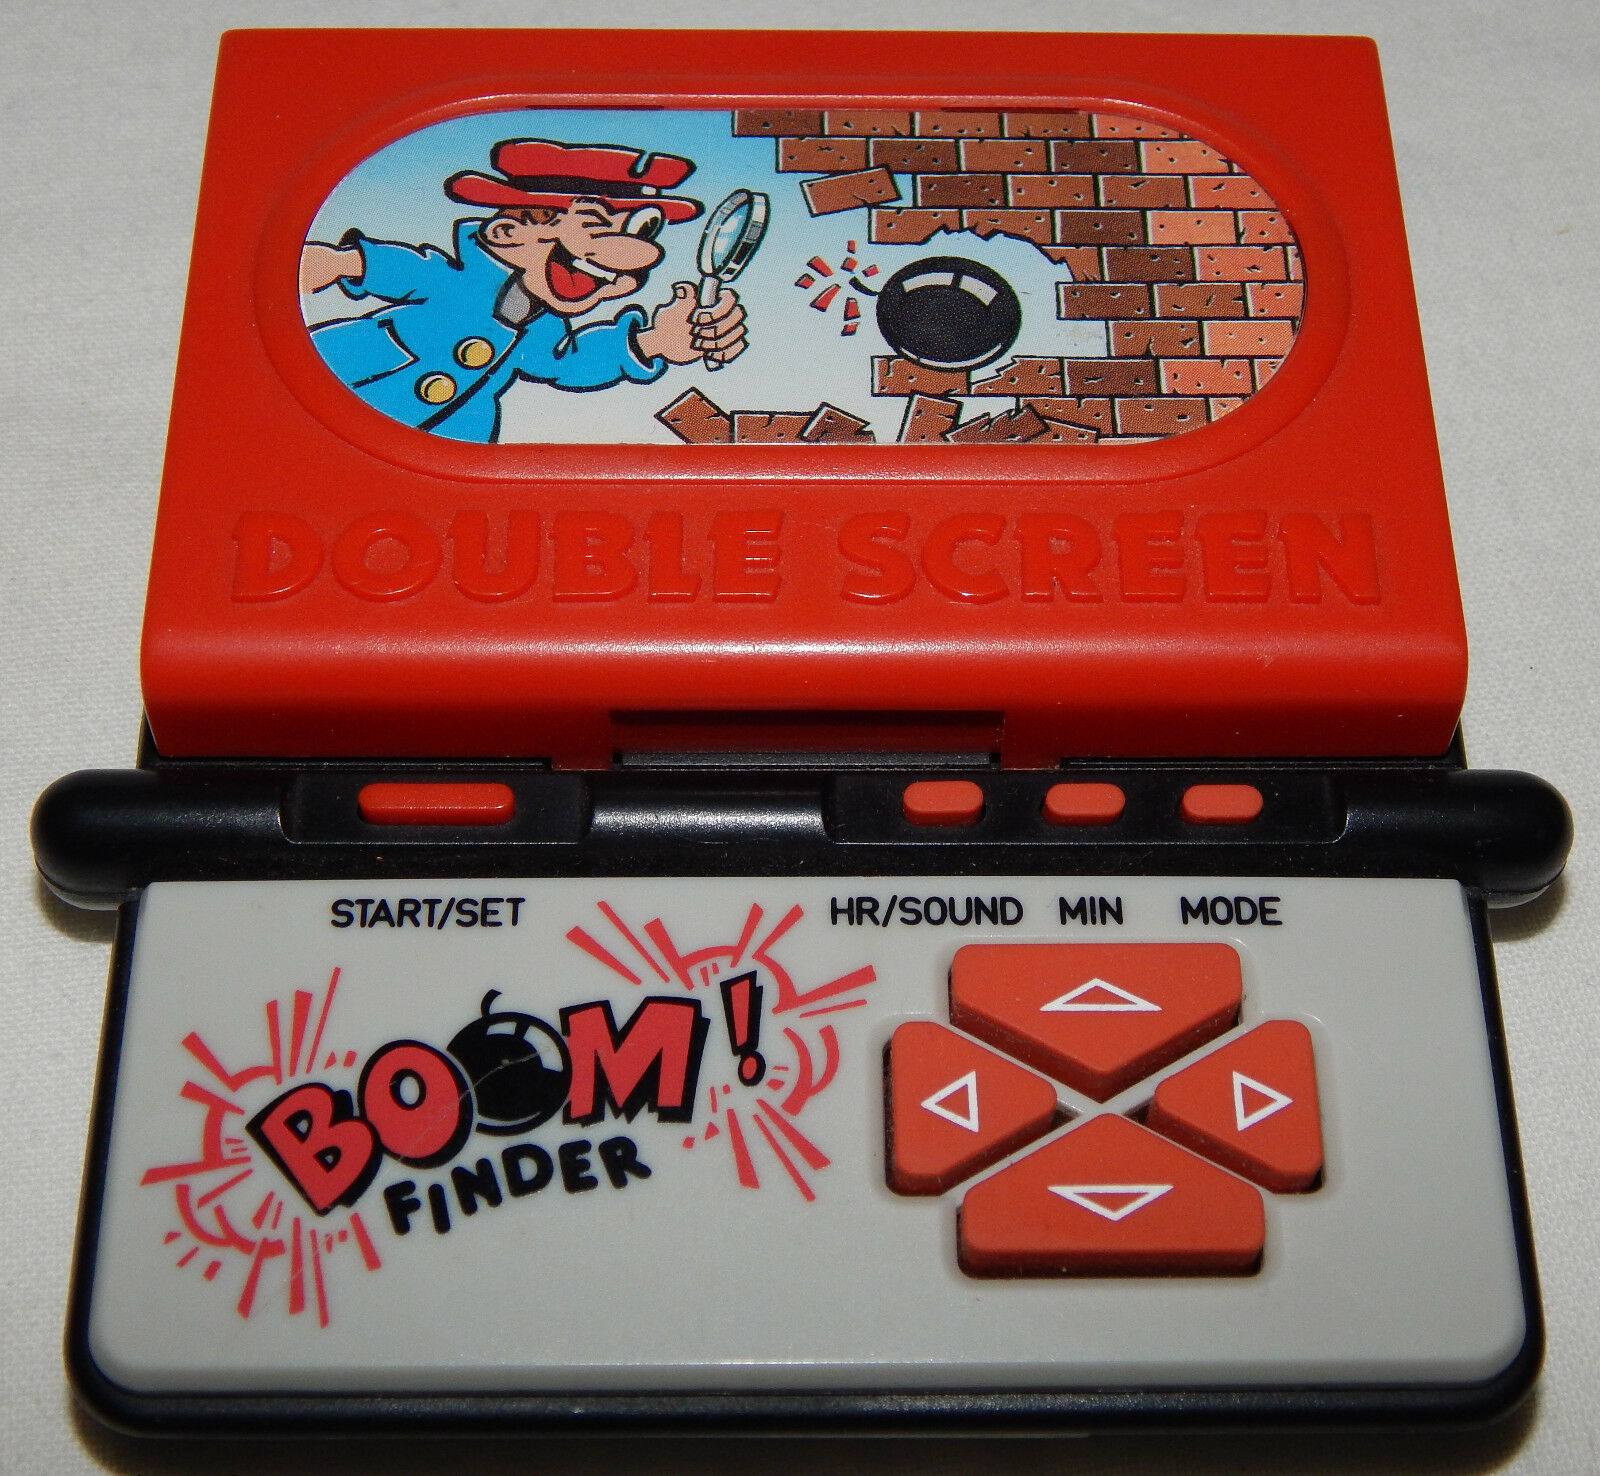 VINTAGE DUAL SCREEN BOMB FINDER LCD ELECTRONIC HANDHELD GAME BY SYSTEMA